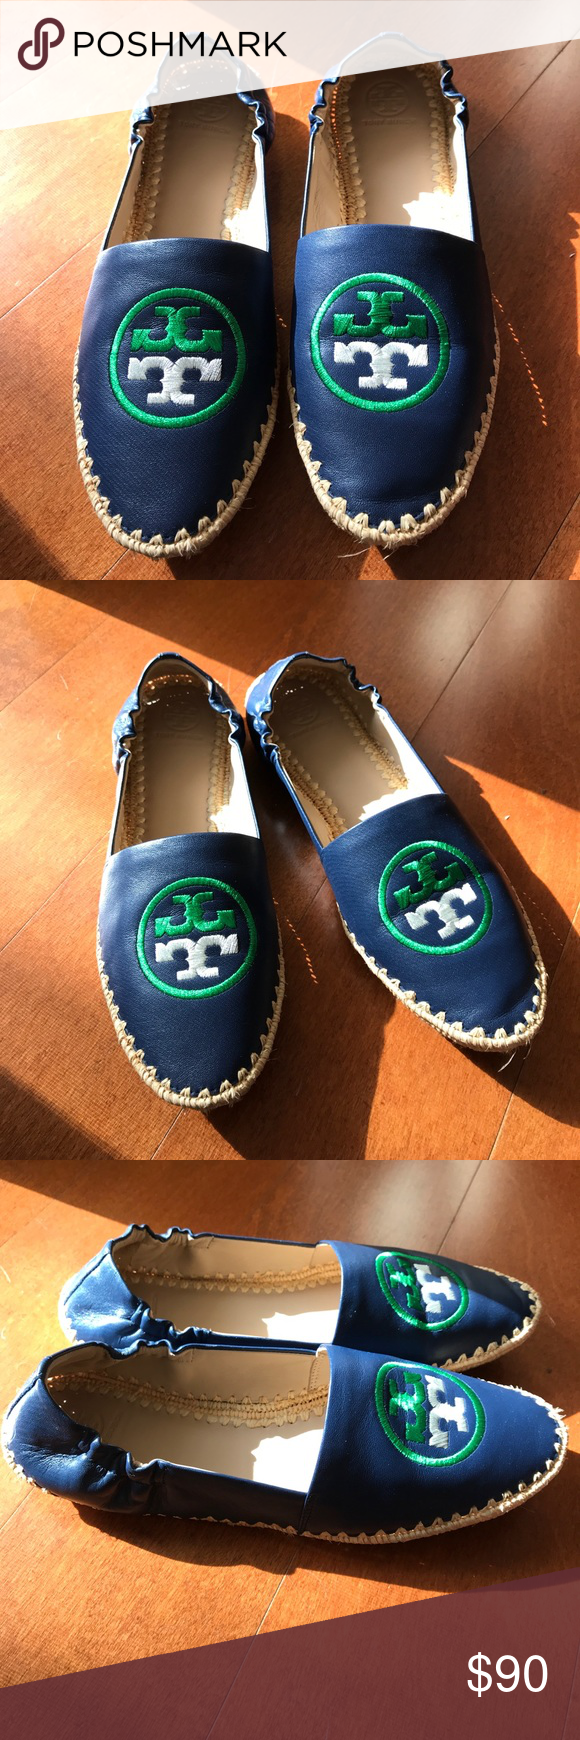 6e0442db791 Tory Burch Darien loafer Tory Burch Darien loafer- navy blue. Excellent  condition. Worn once Tory Burch Shoes Flats   Loafers